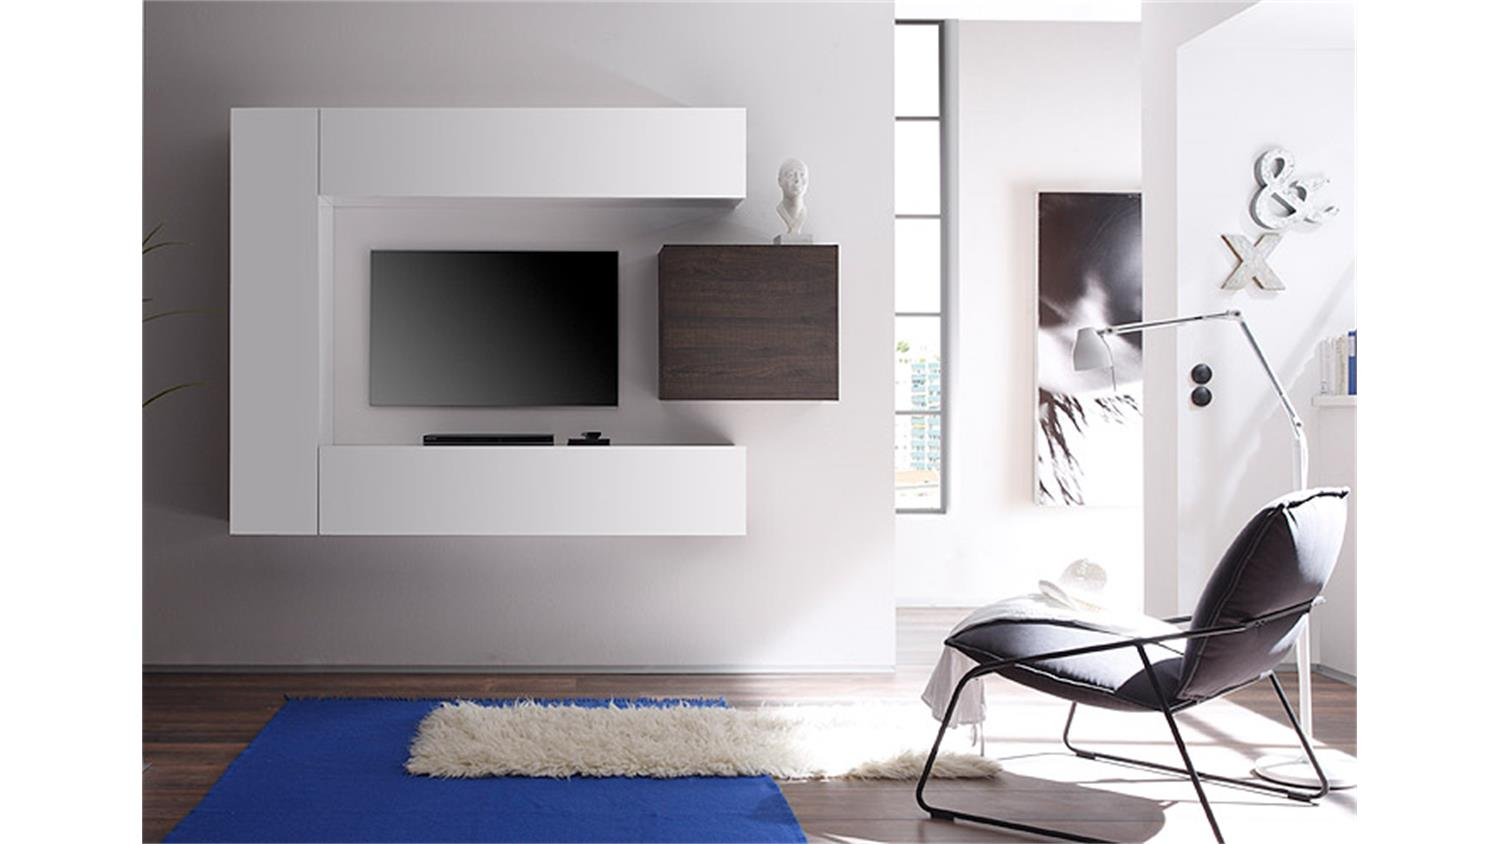 wohnwand cube kombi 1 wei lack und eiche wenge. Black Bedroom Furniture Sets. Home Design Ideas